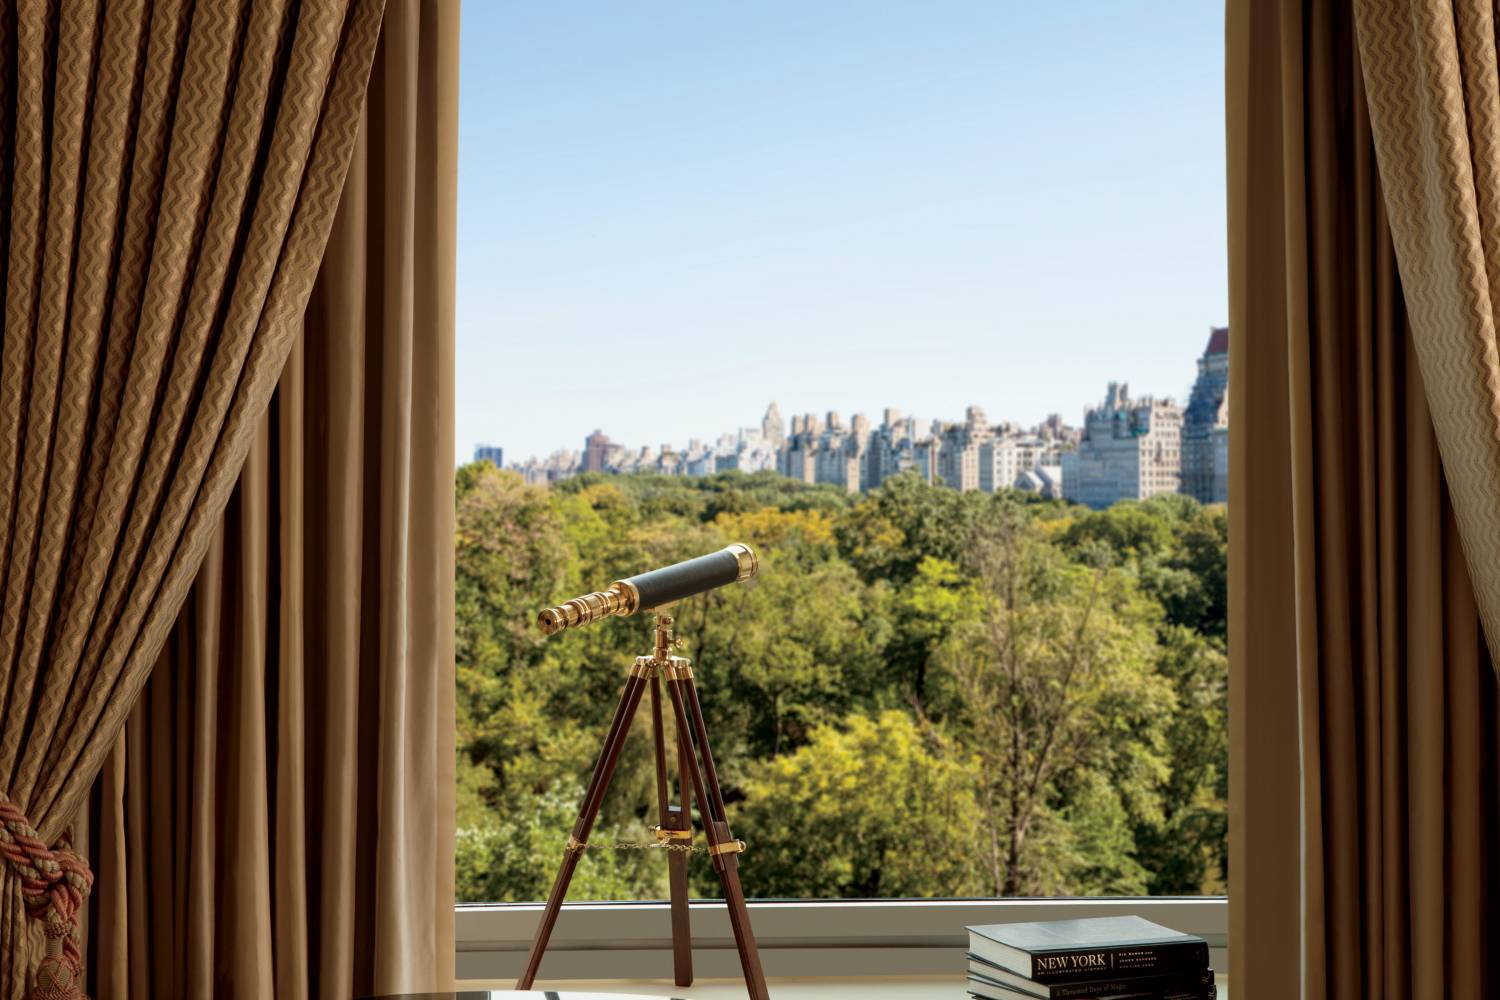 Rooms: NYC Hotels: Rooms With A View